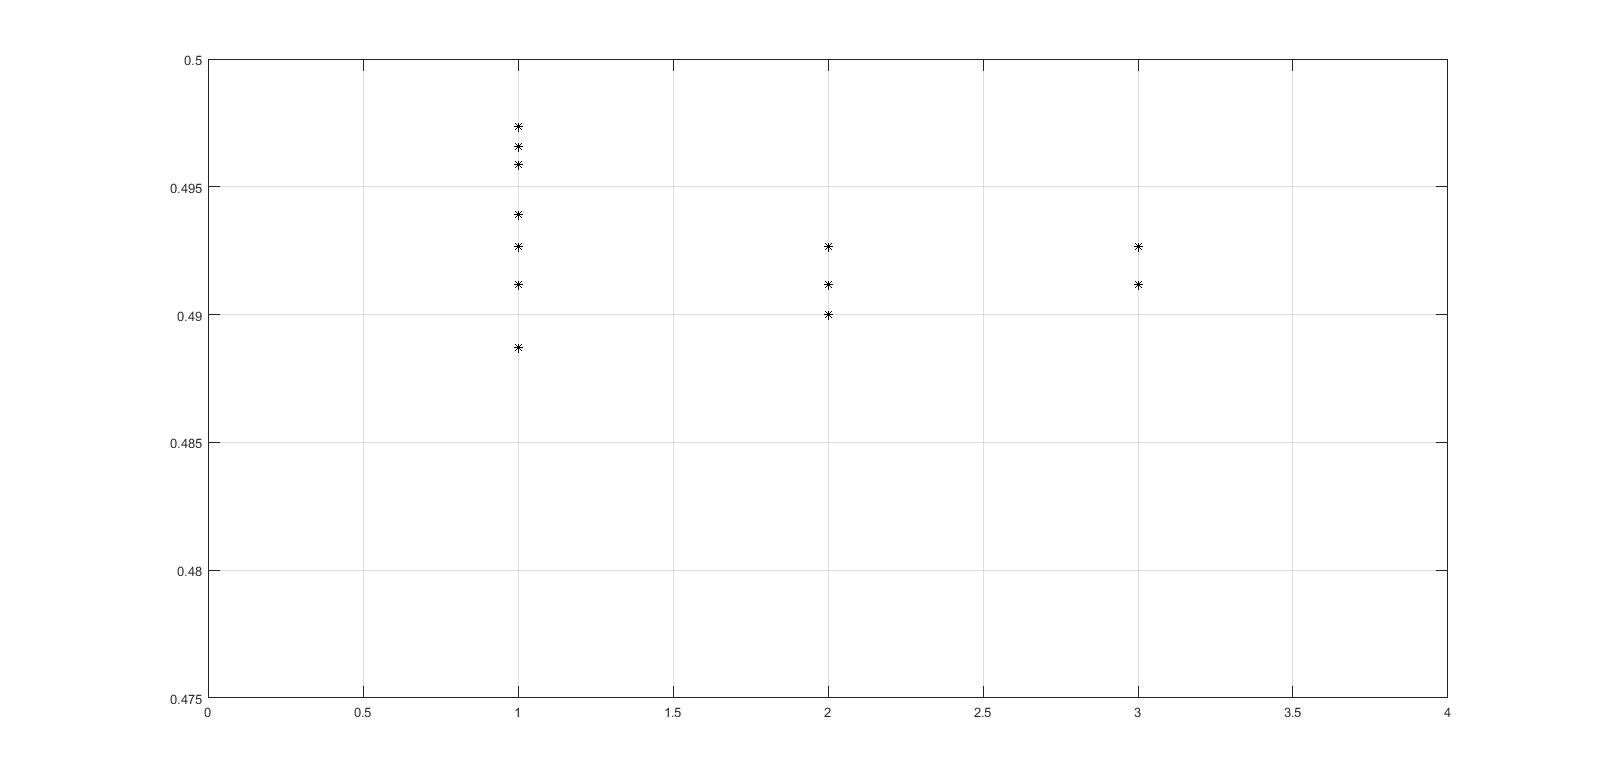 How can i plot single x value of type string against multiple y ive tried with plot and this is how i want to present the result datas but instead of 1 2 and 3 itu should be 40 repetitions 10 repetitions ccuart Image collections